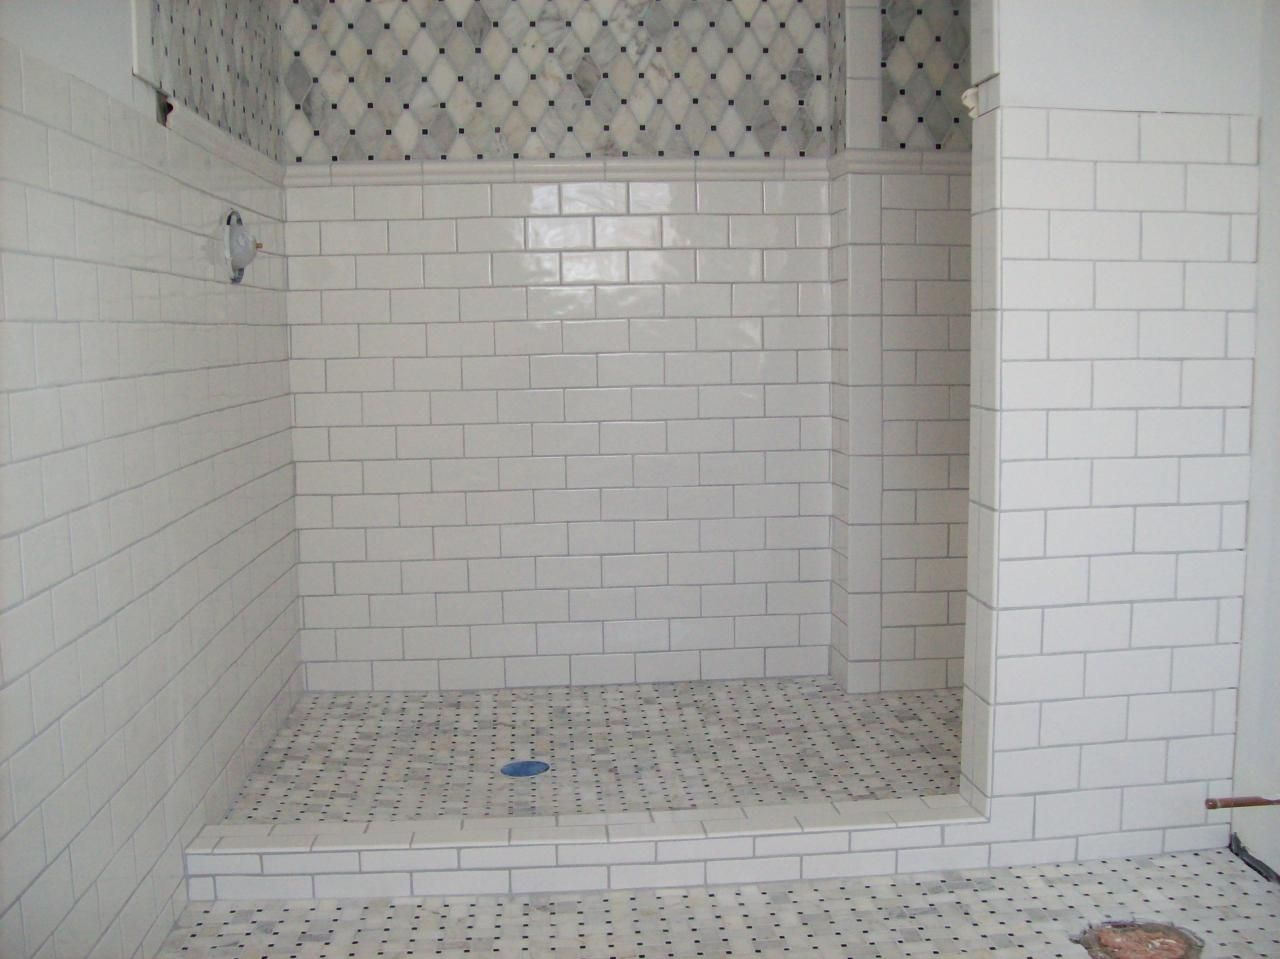 Marble Tile Shower Floor With Ceramic Subway Tile On The